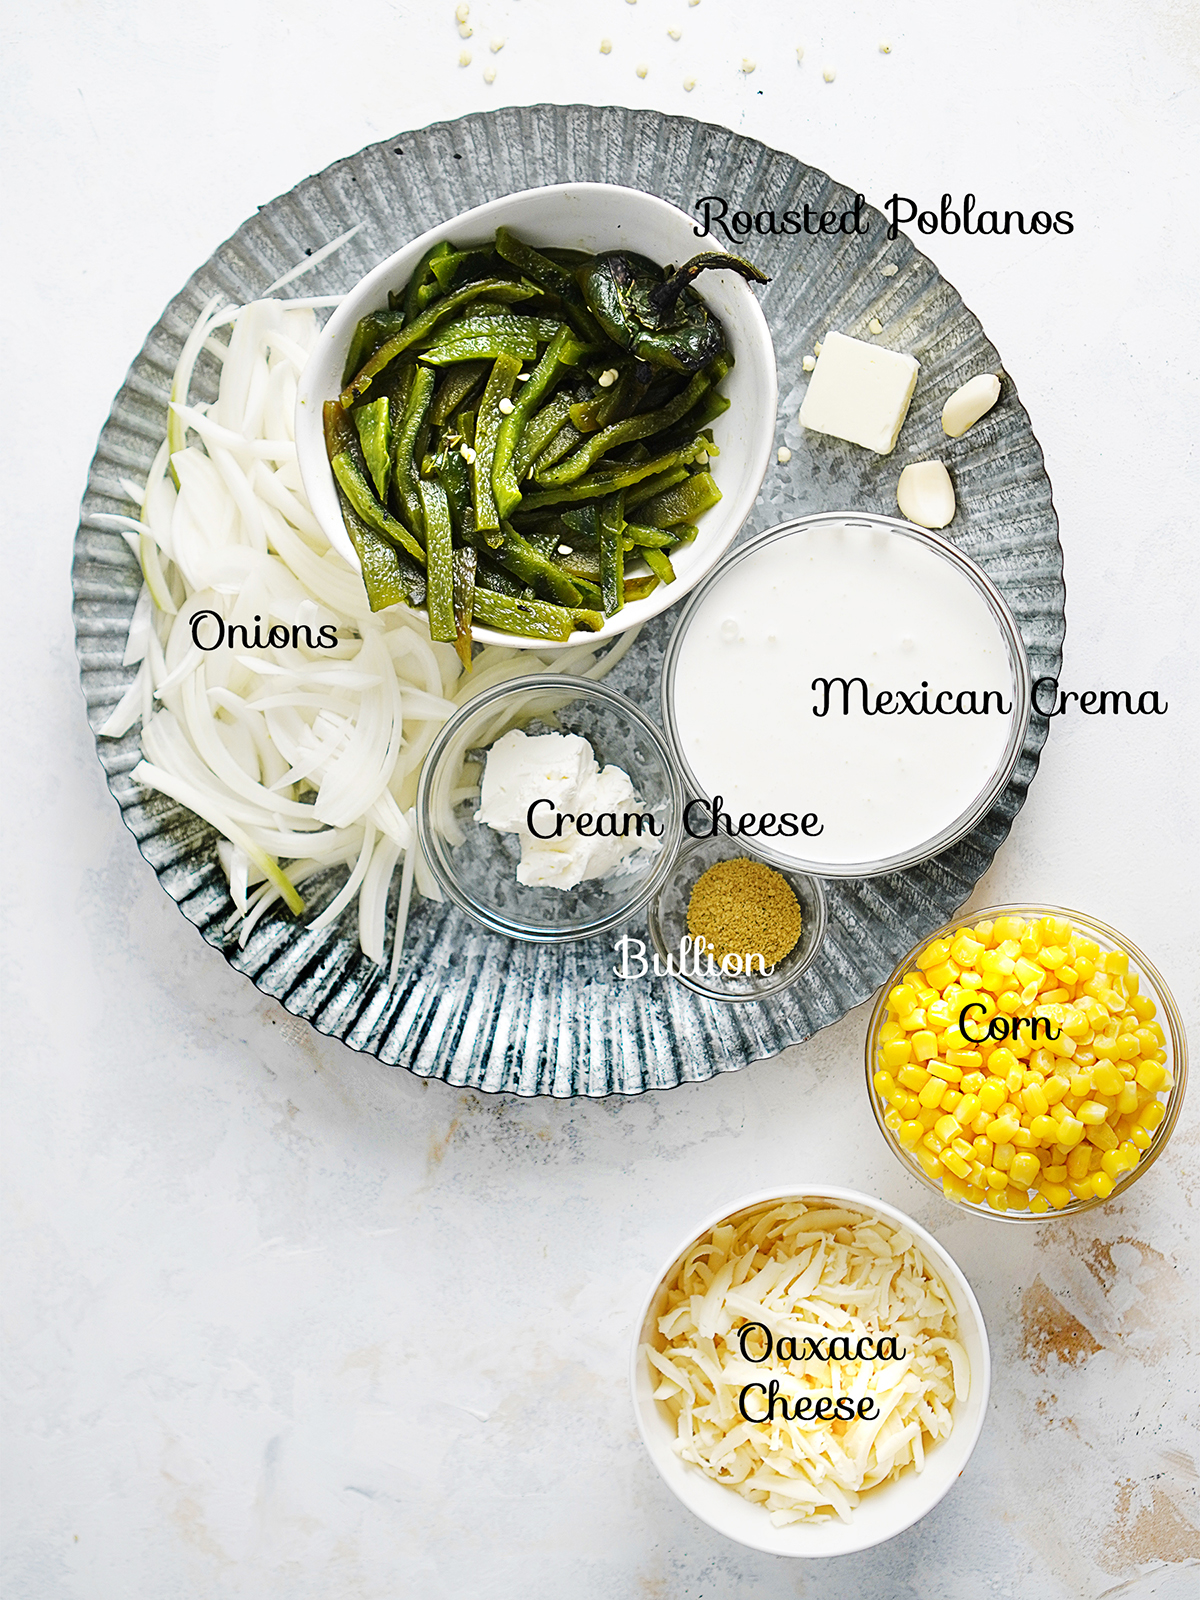 """Ingredients on a plate placed in small bowls"""" corn, shredded cheese, roasted poblano peppers, cream cheese, mexican crema, onions, and bullion powder."""